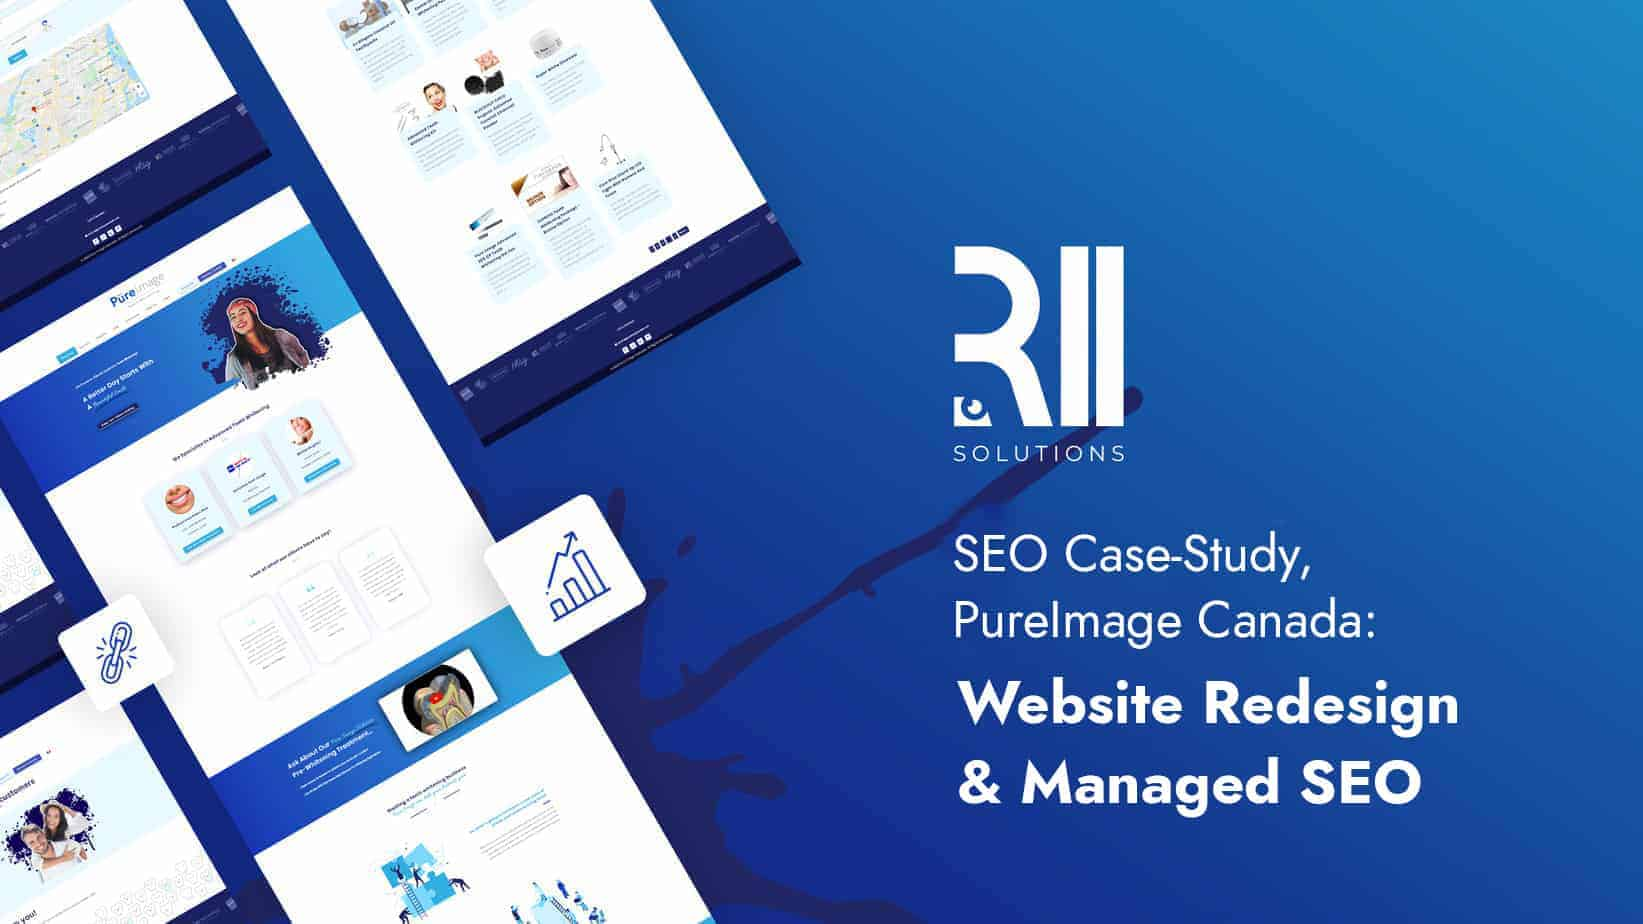 SEO Case-Study, PureImage Canada: Website Redesign & Managed SEO